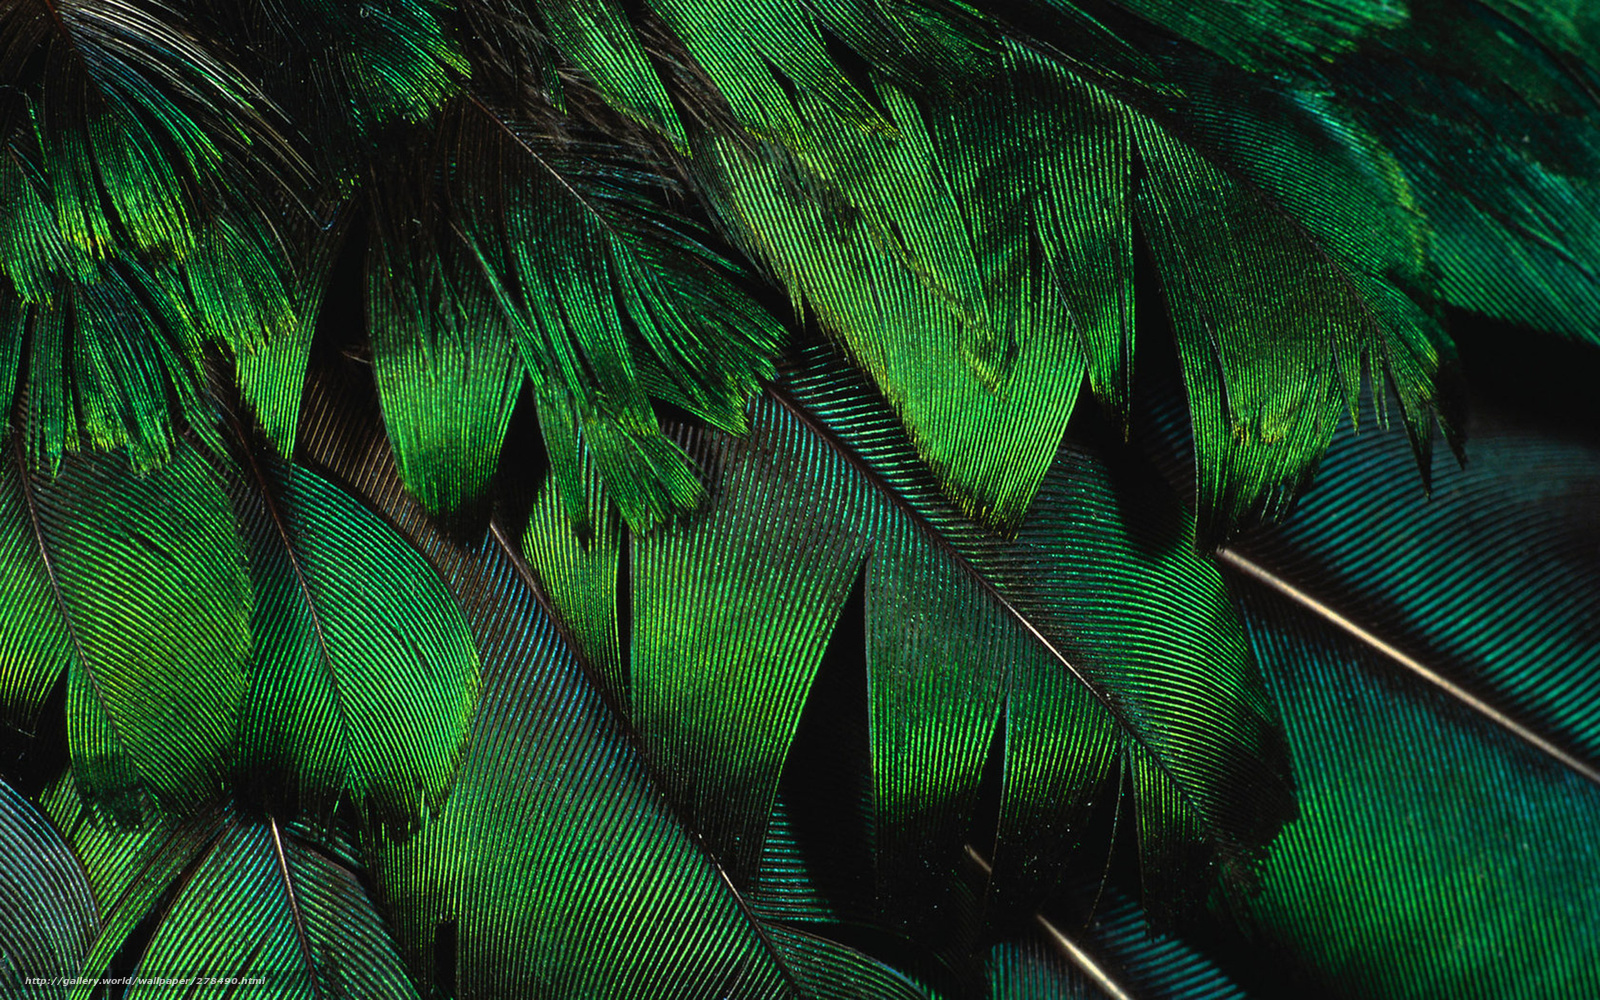 Feathers Wallpaper Stock Images RoyaltyFree Images